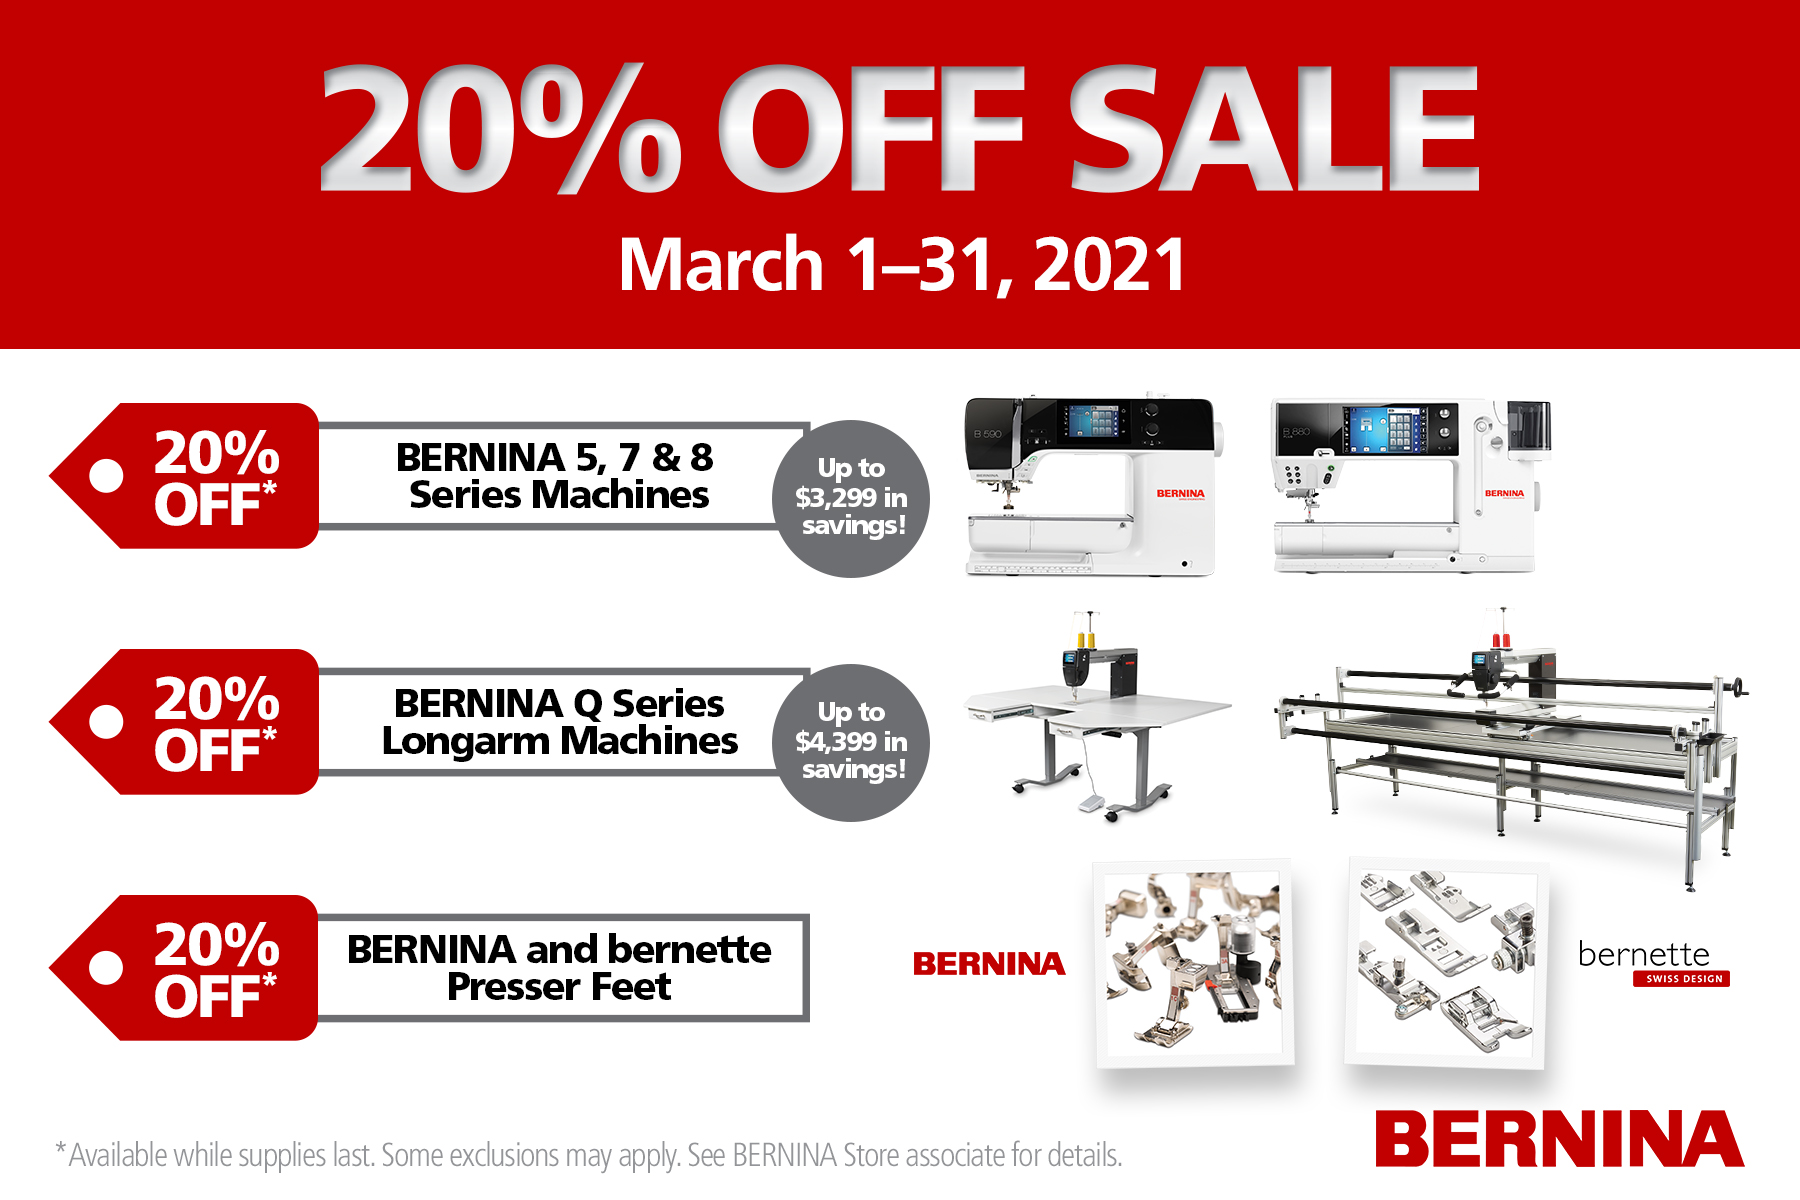 BERNINA March Domestics Promo 2021